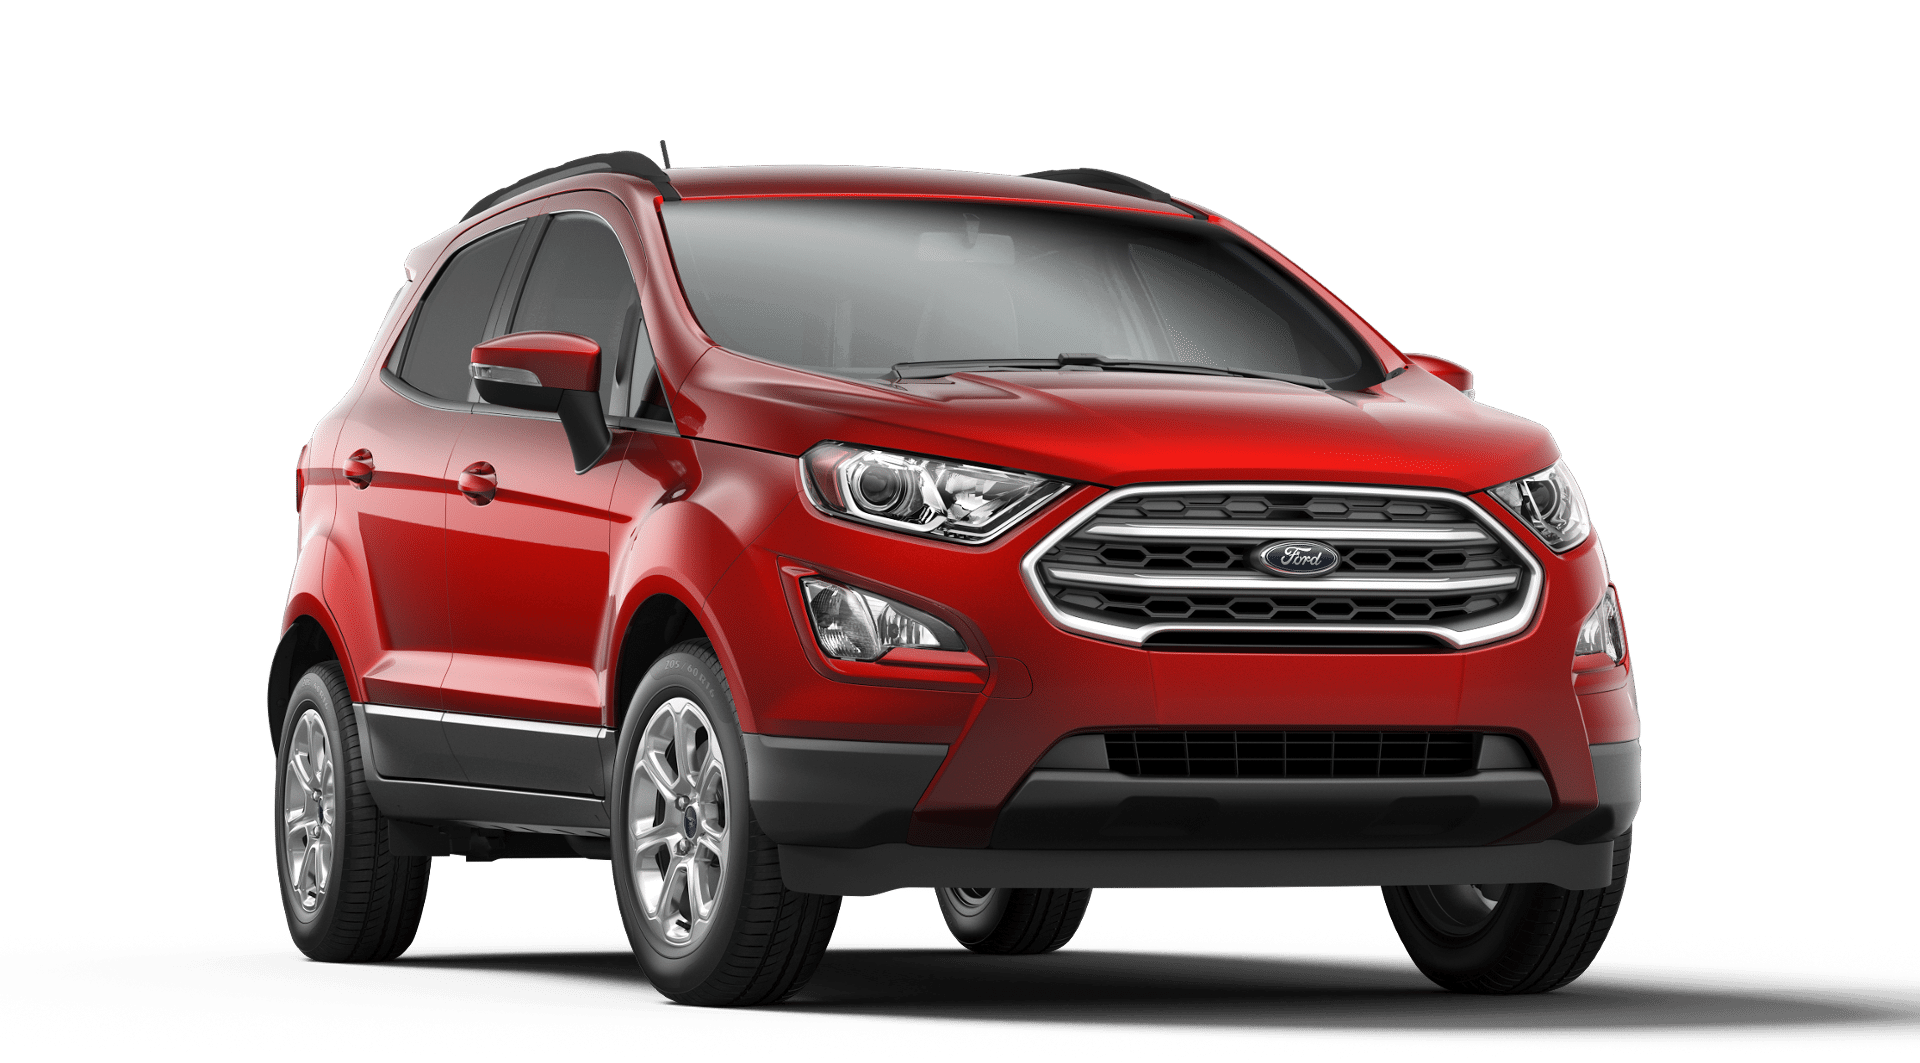 2019-Ford-EcoSport-Ruby-Red-Exterior-Color_o